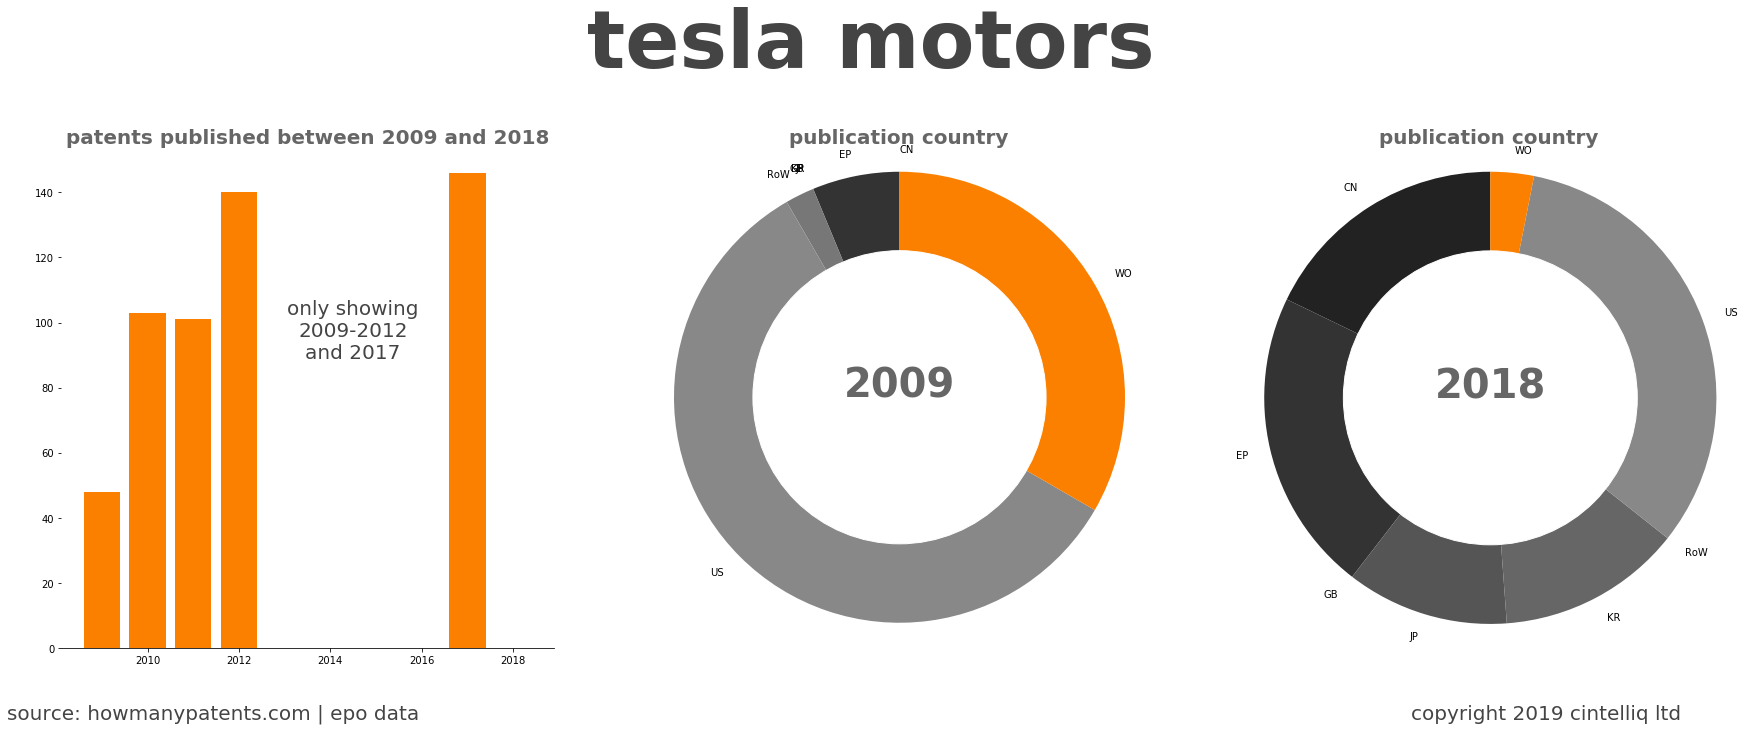 summary of patents for Tesla Motors